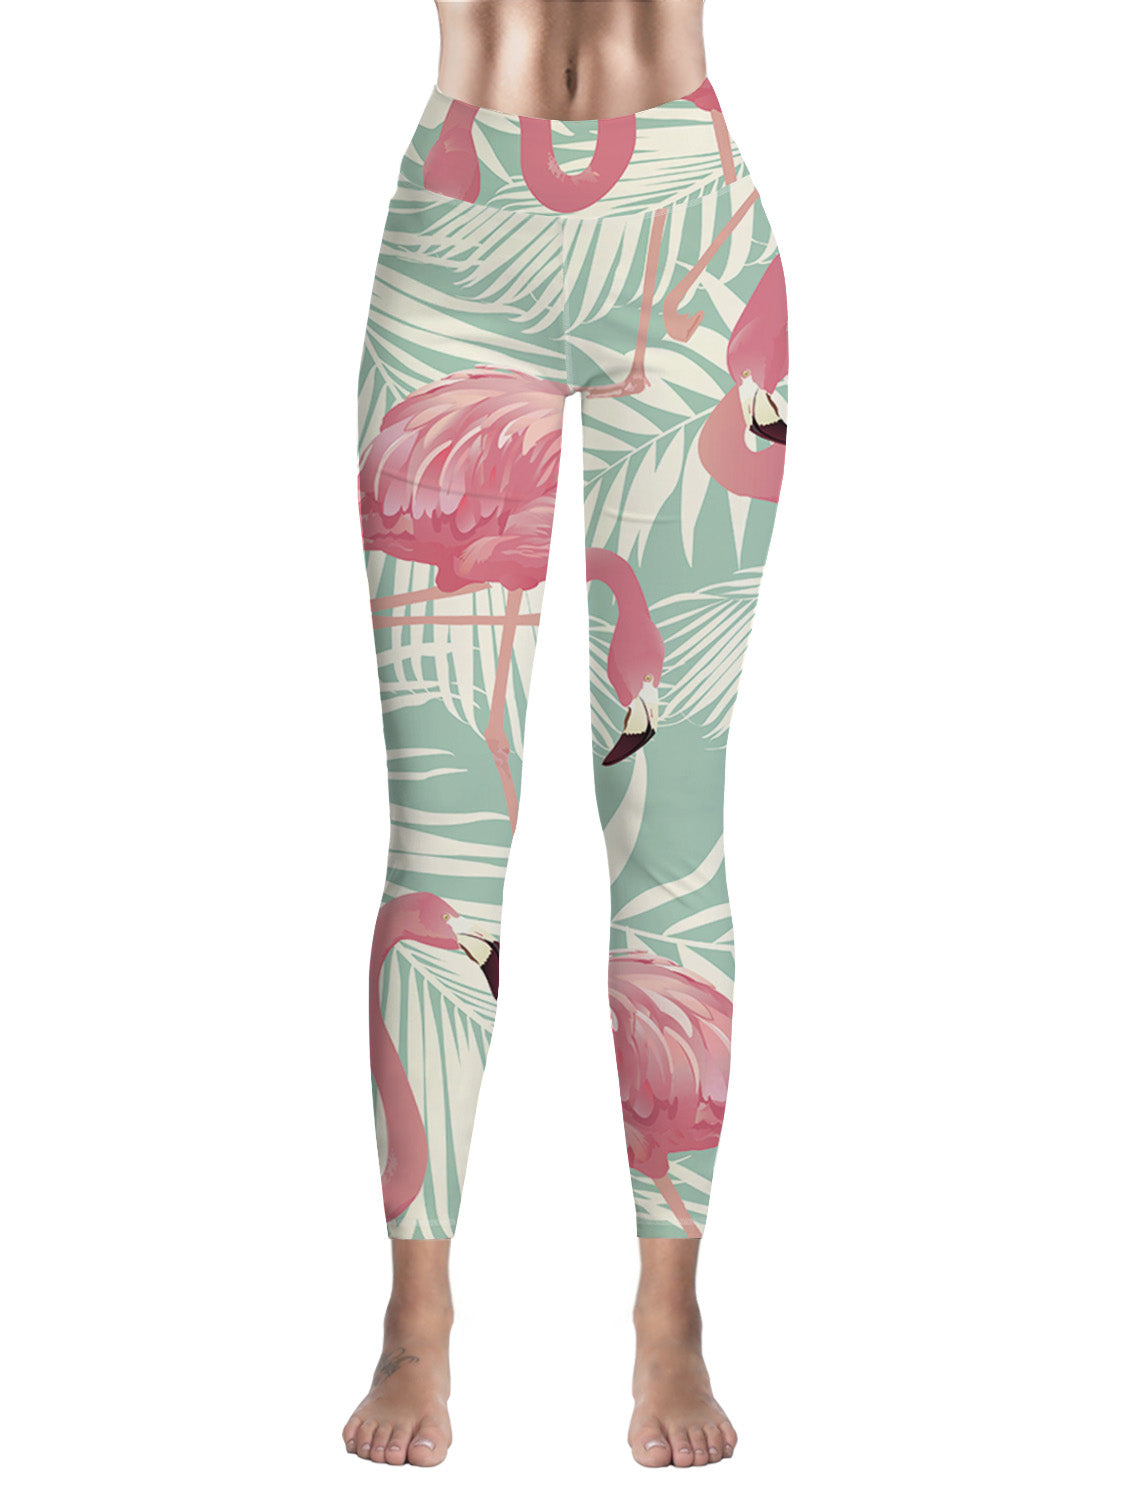 Leggings Femme Fitness Flamant Rose Tropical Vert